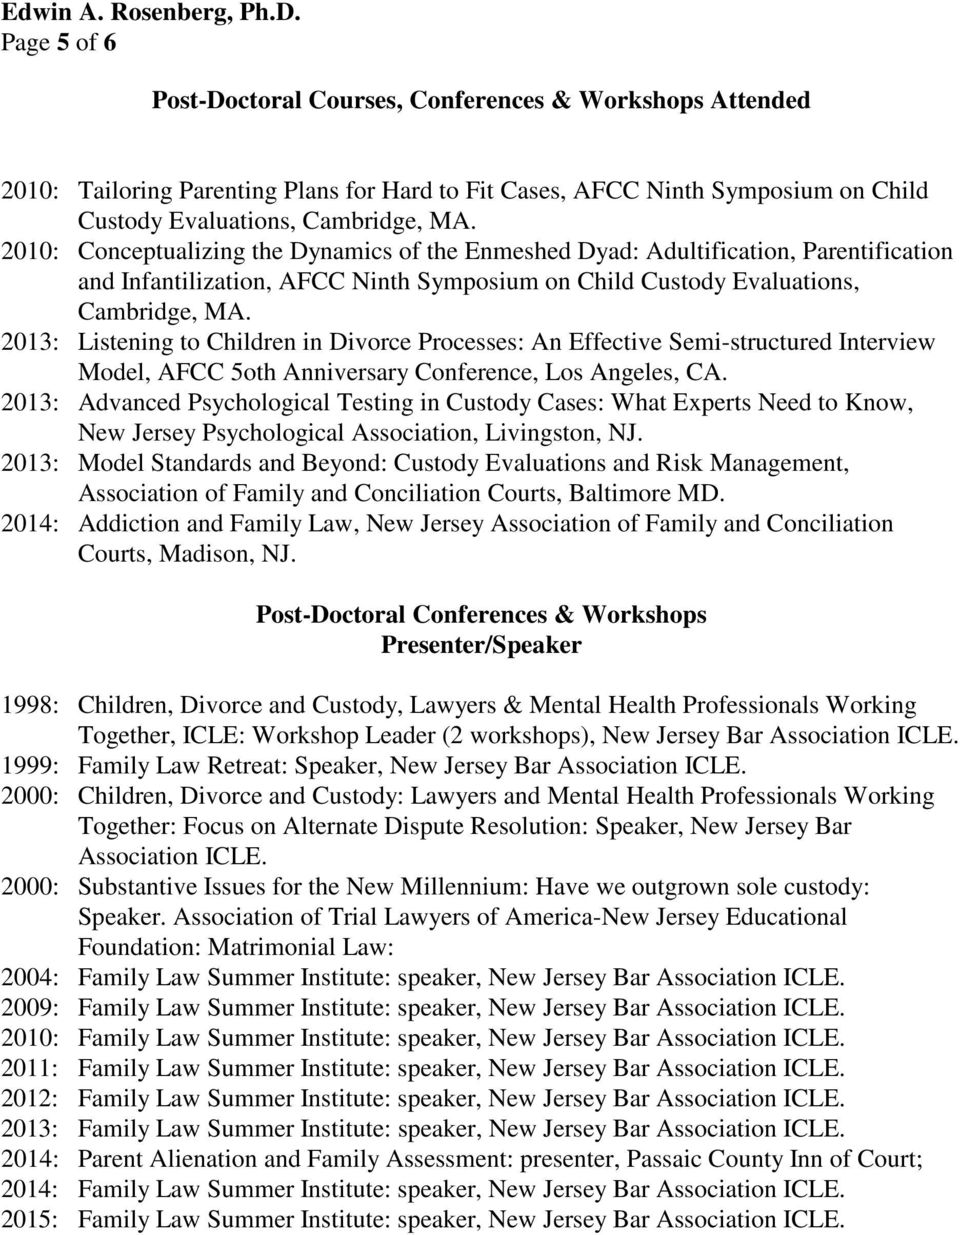 2013: Listening to Children in Divorce Processes: An Effective Semi-structured Interview Model, AFCC 5oth Anniversary Conference, Los Angeles, CA.